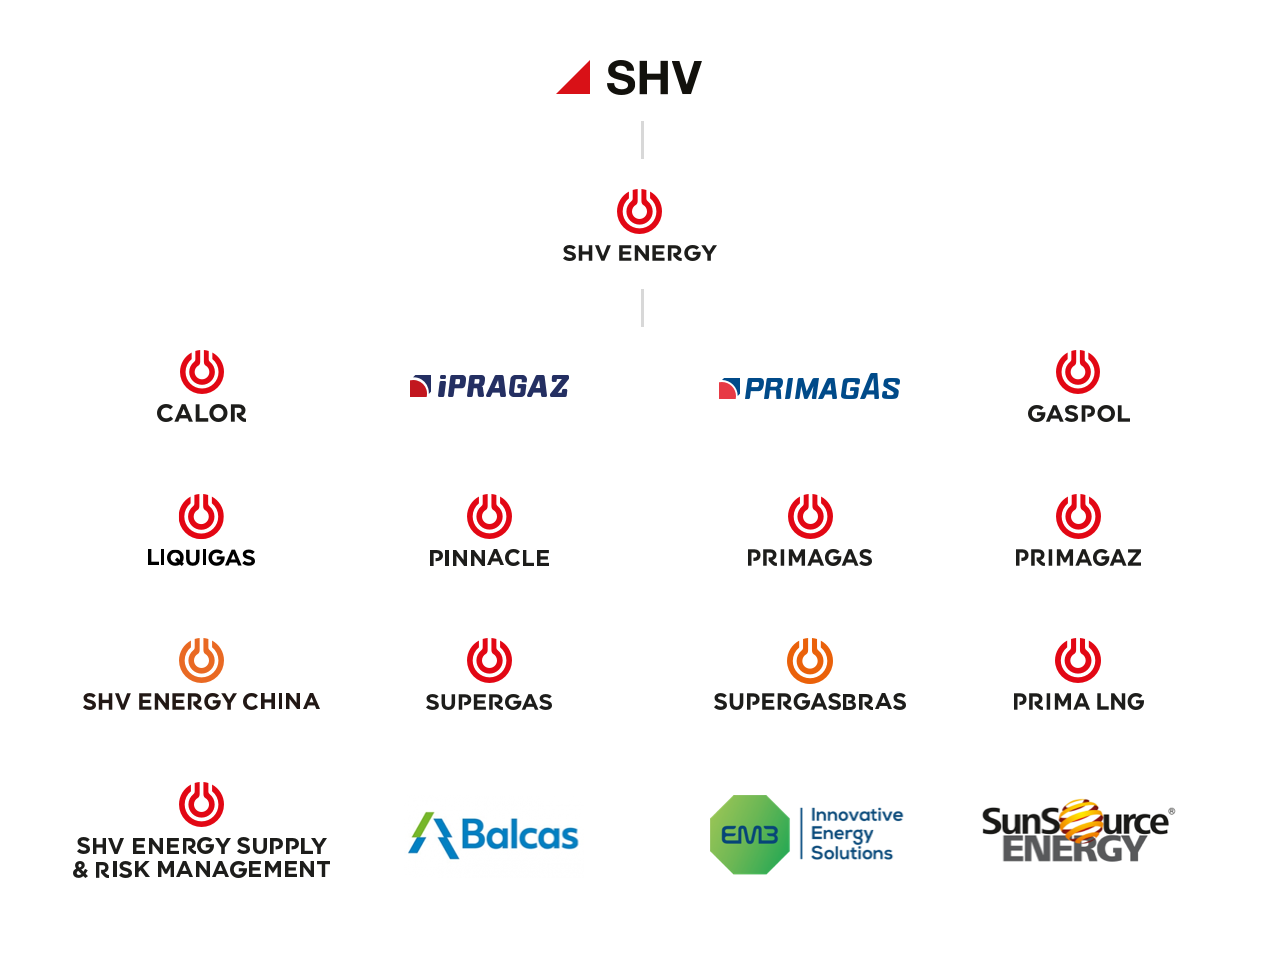 SHV Energy Structure